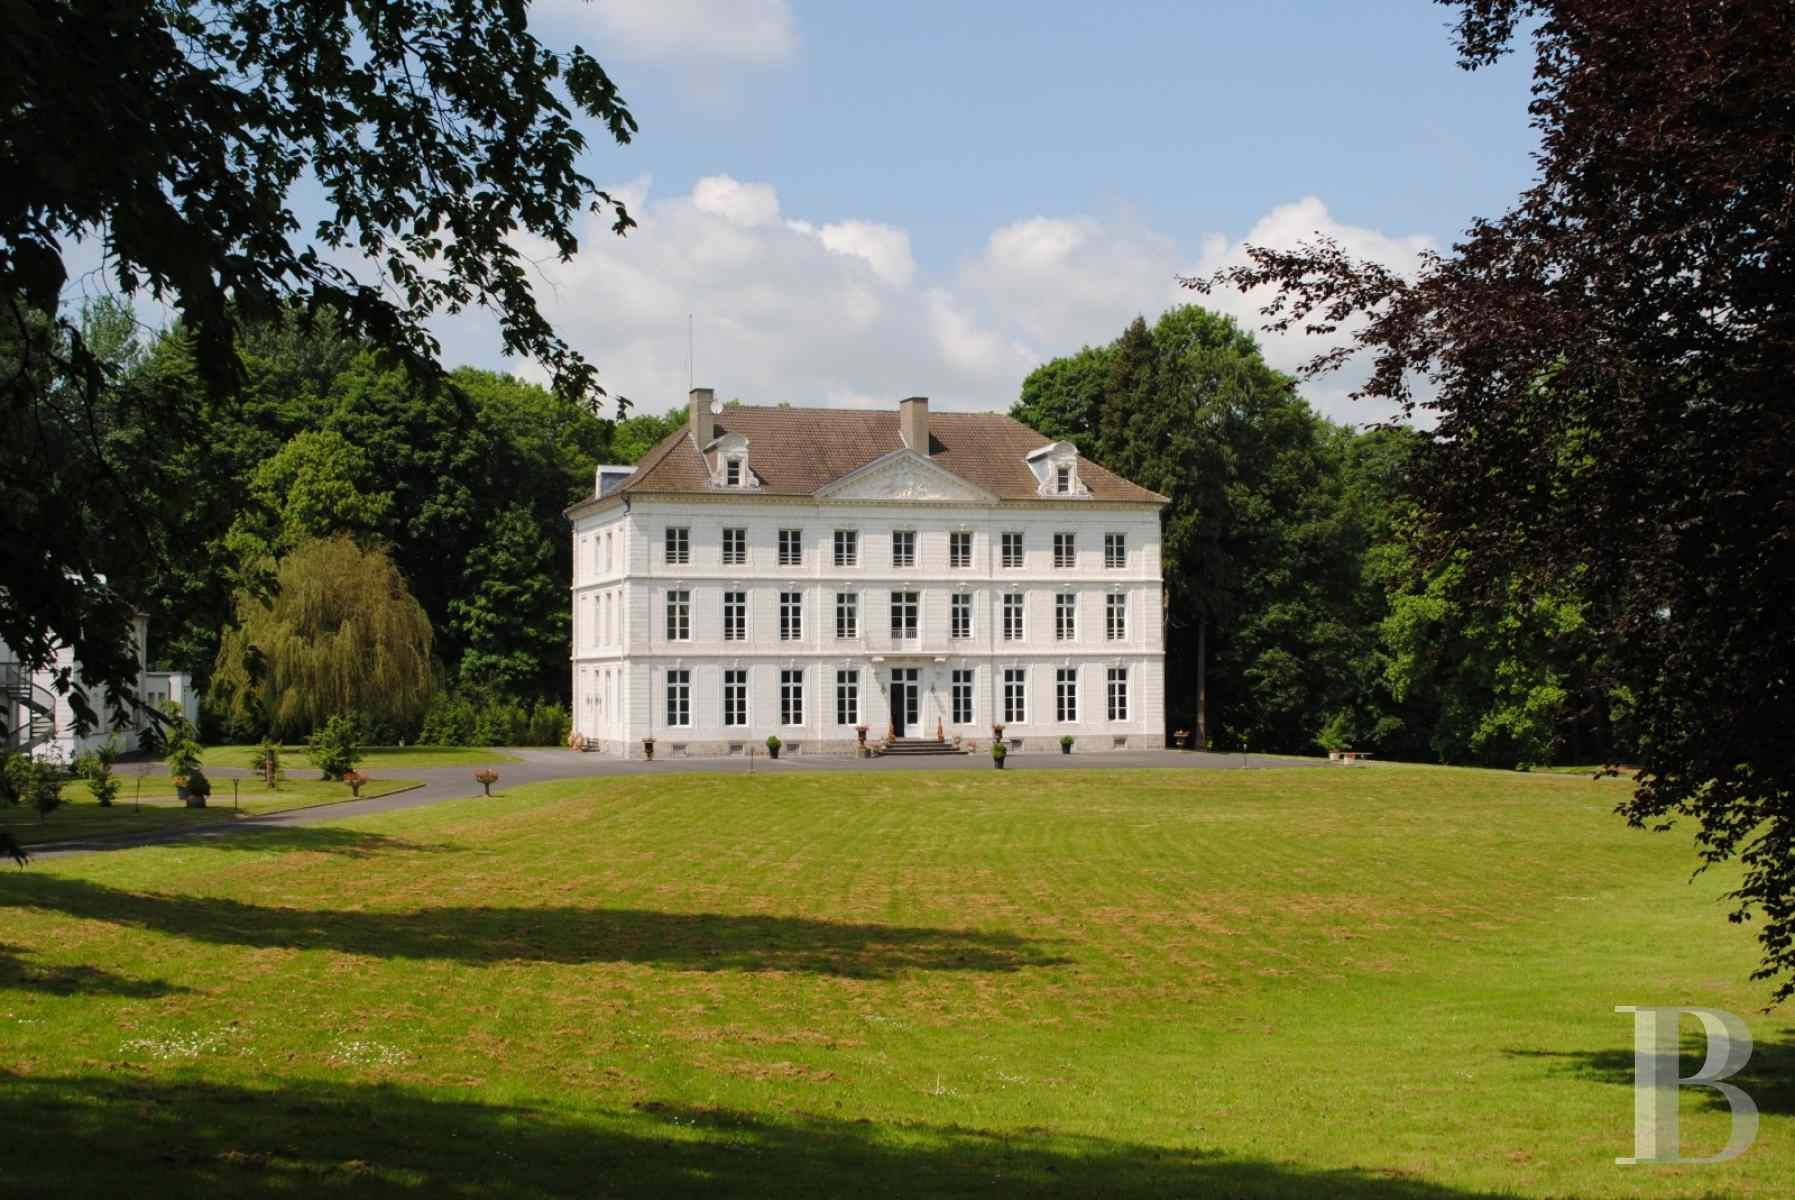 chateaux a vendre picardie 19eme siecle - 1 zoom